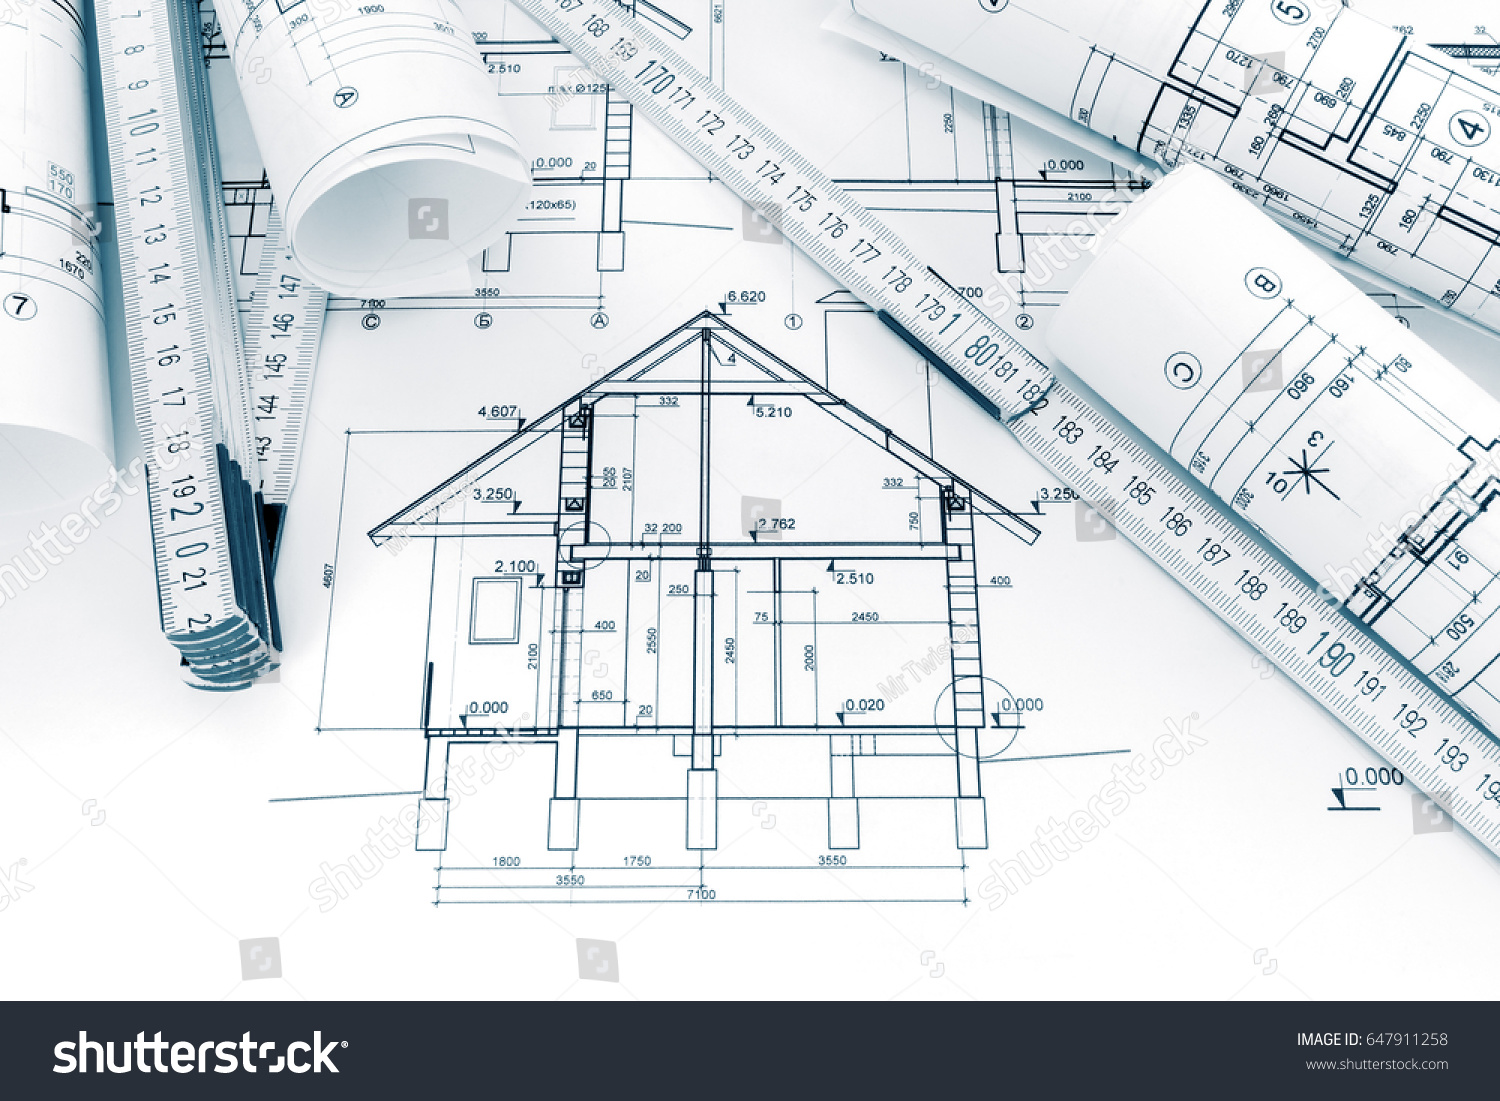 Rolls technical drawings plans blueprints house stock photo rolls of technical drawings with plans and blueprints for house construction ccuart Images